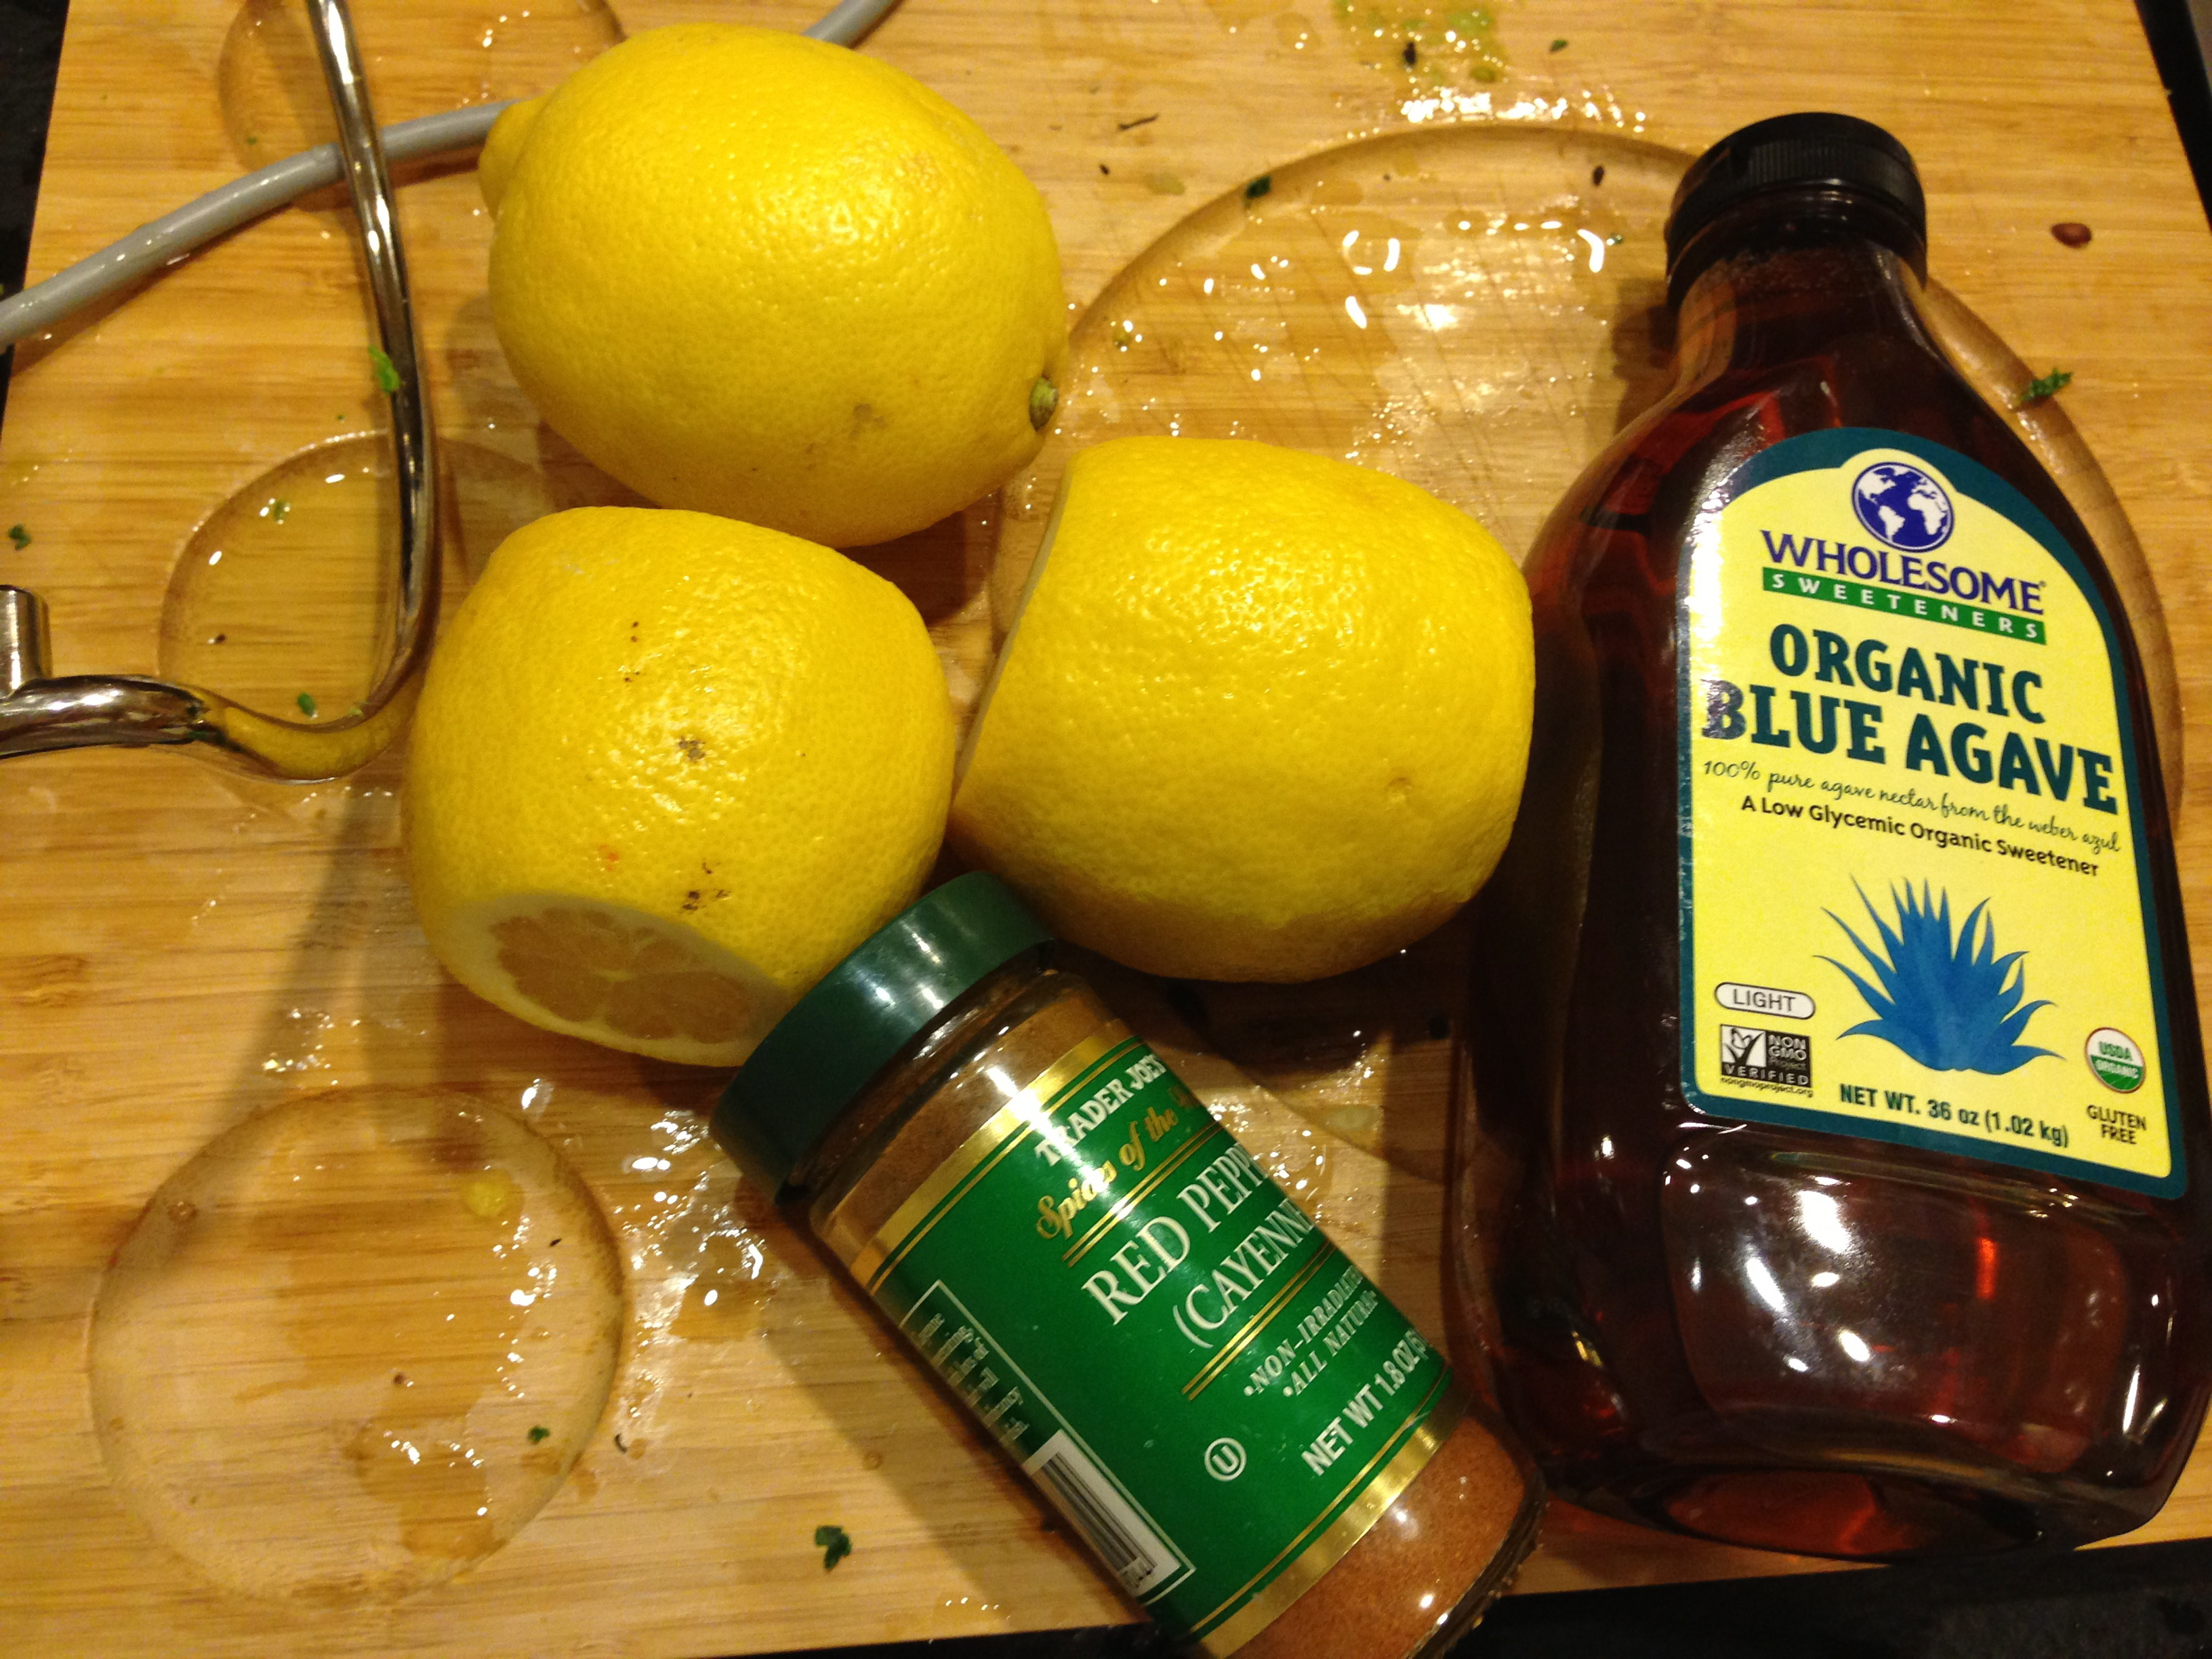 Meet the juices how to do your very own diy blueprintcleanse img2499 spicy lemonade malvernweather Choice Image